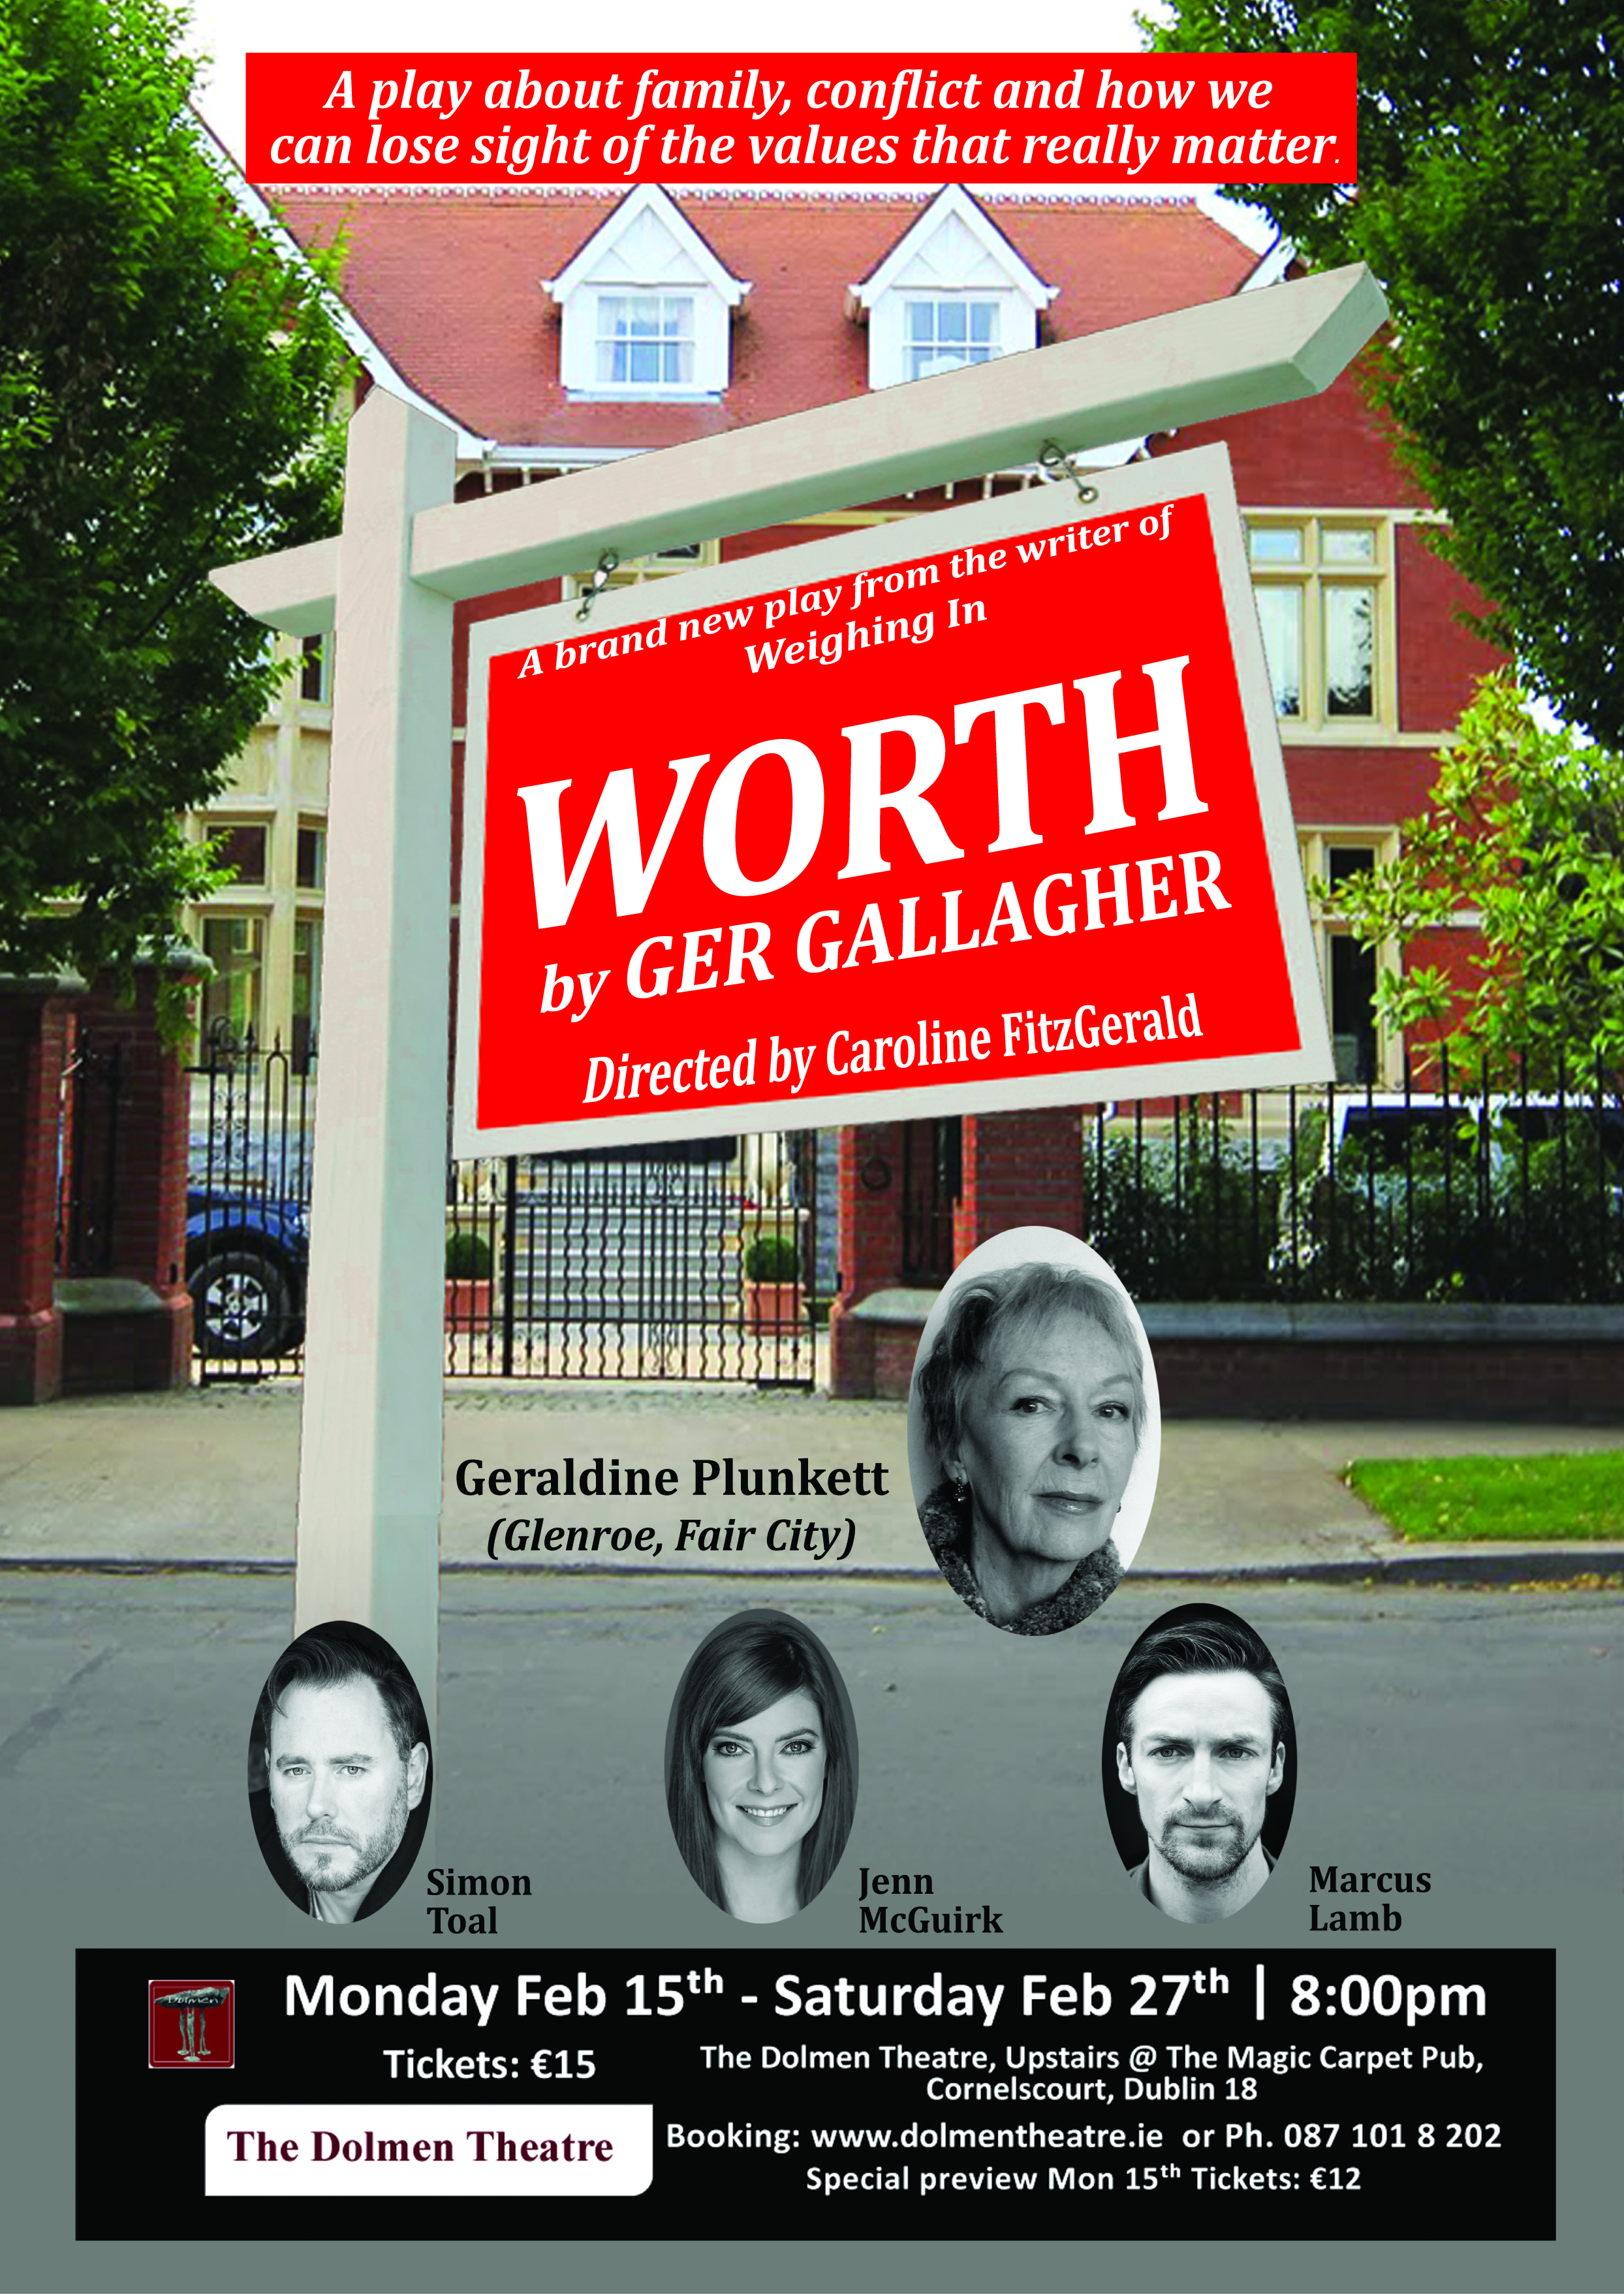 Worth by Ger Gallagher